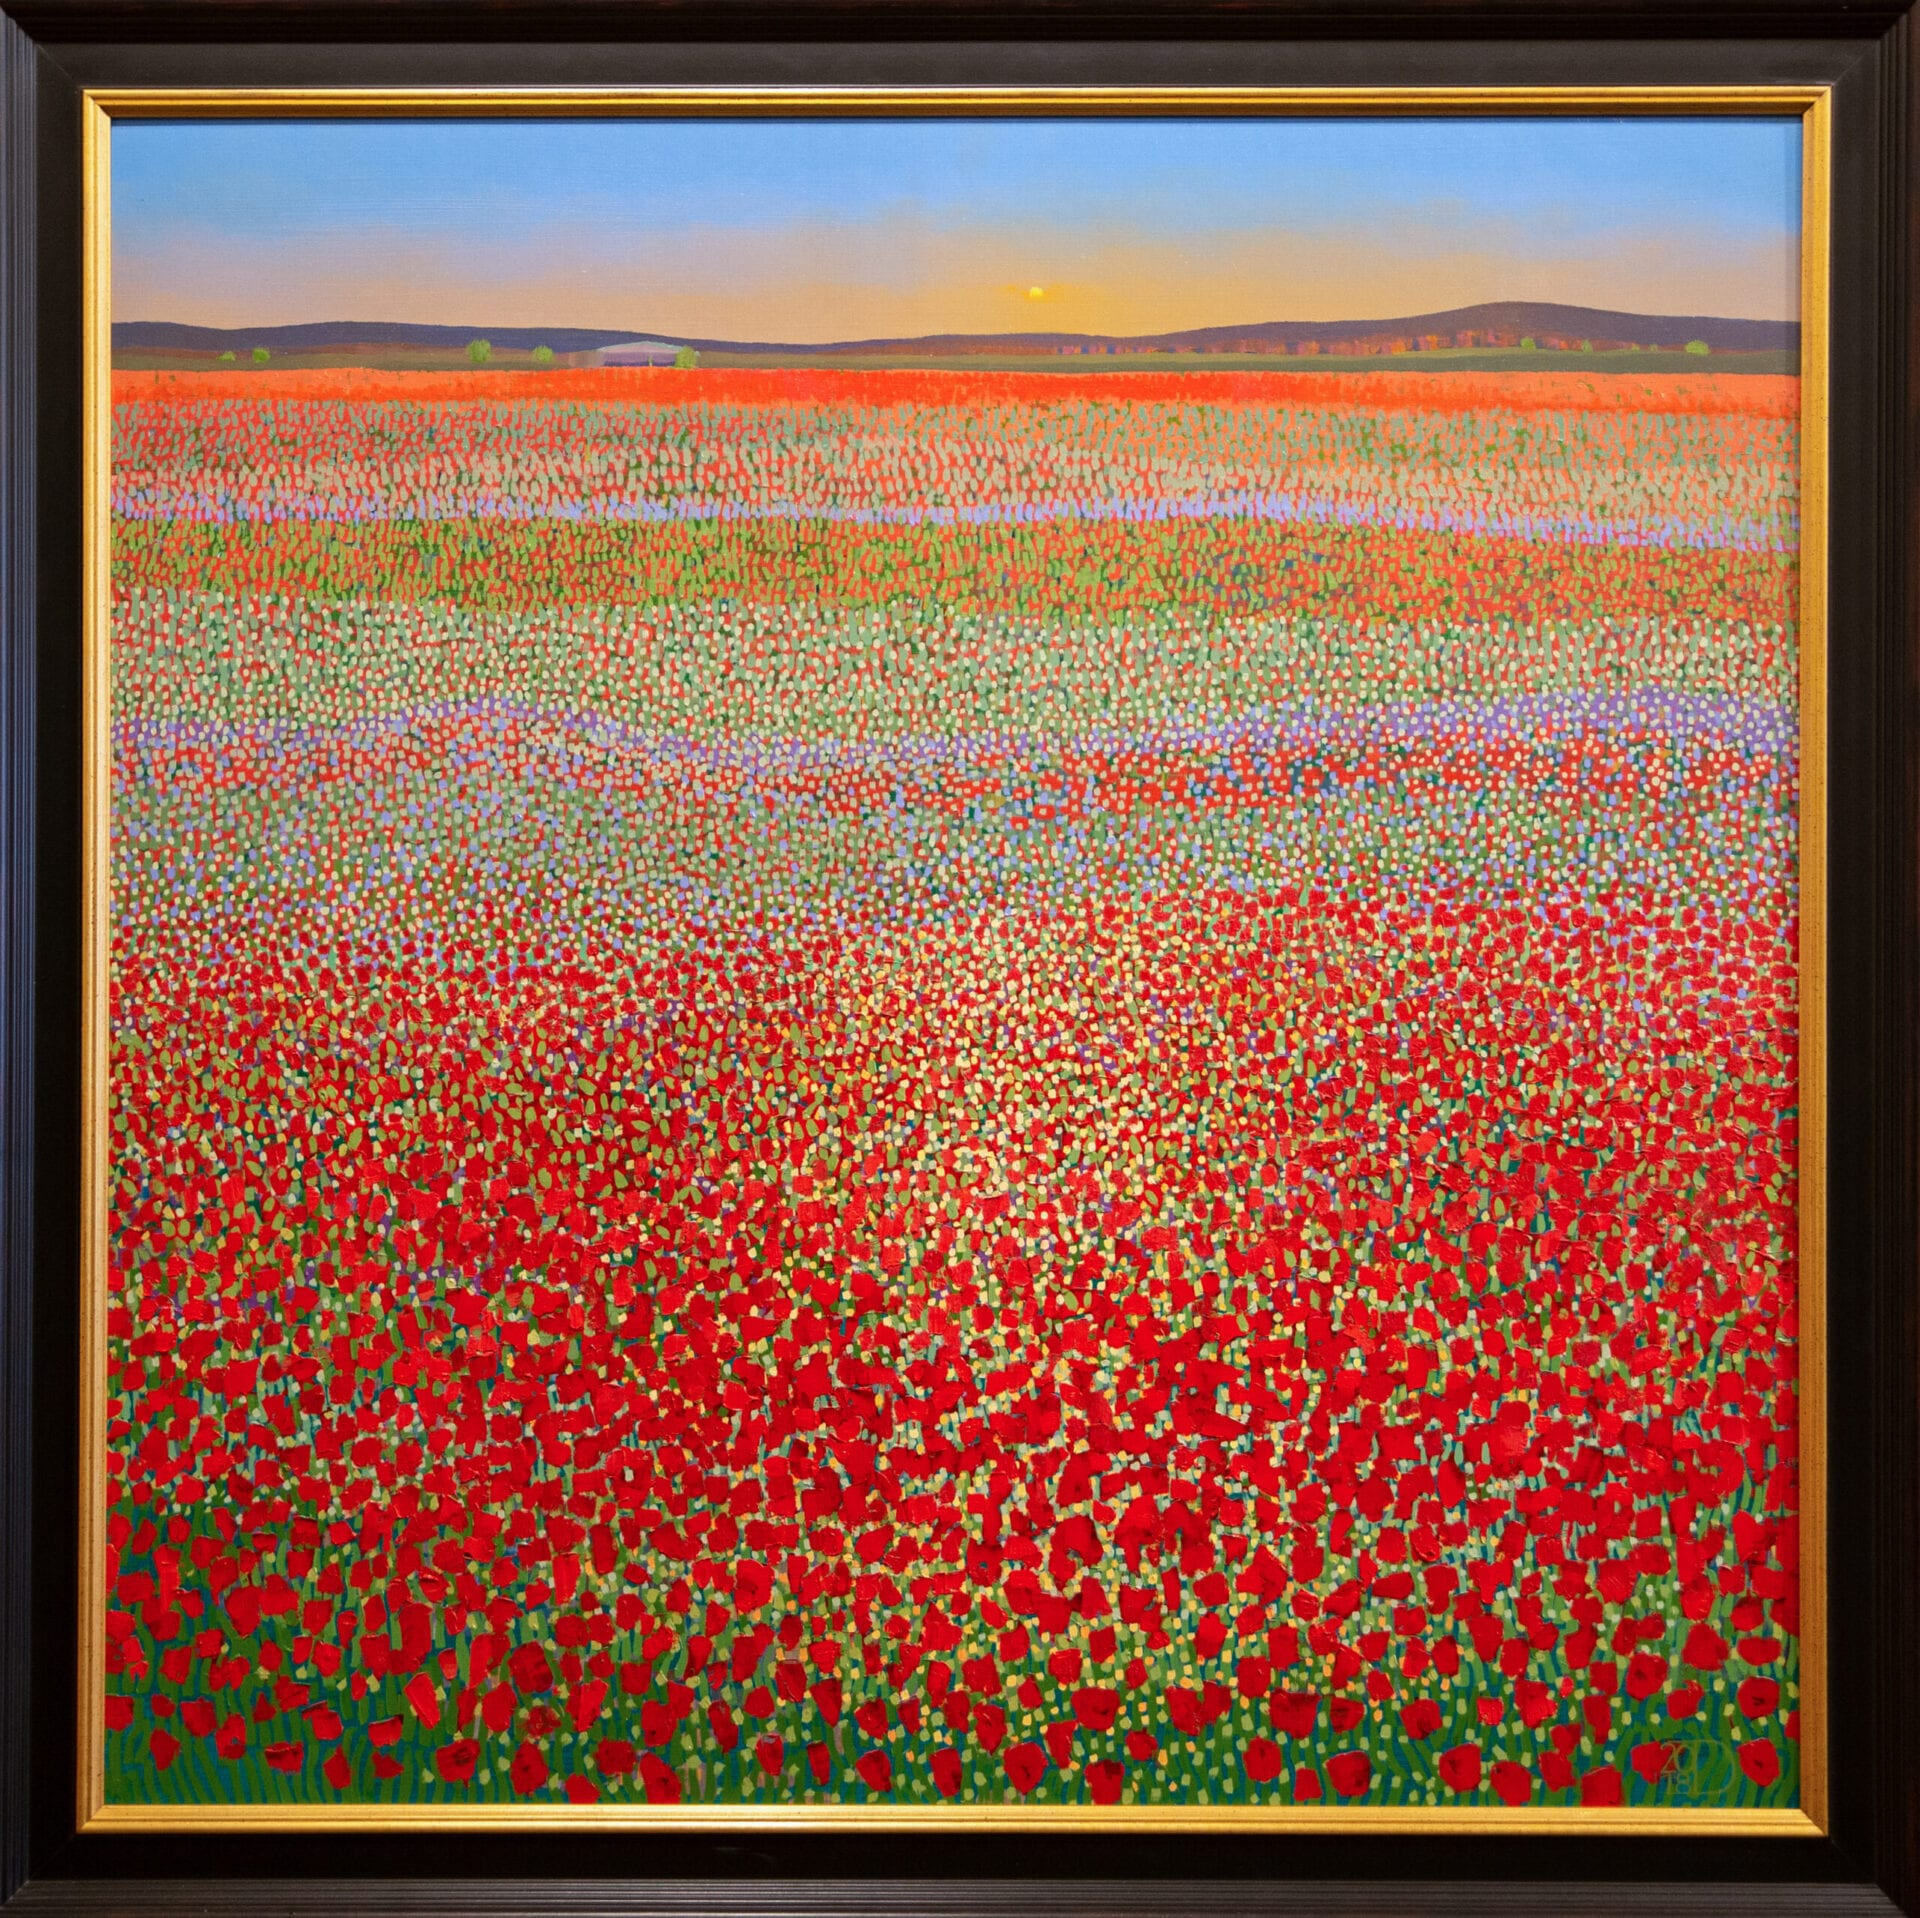 Poppy Field Sunset | Ton Dubbeldam | Oil | 32 x 32""